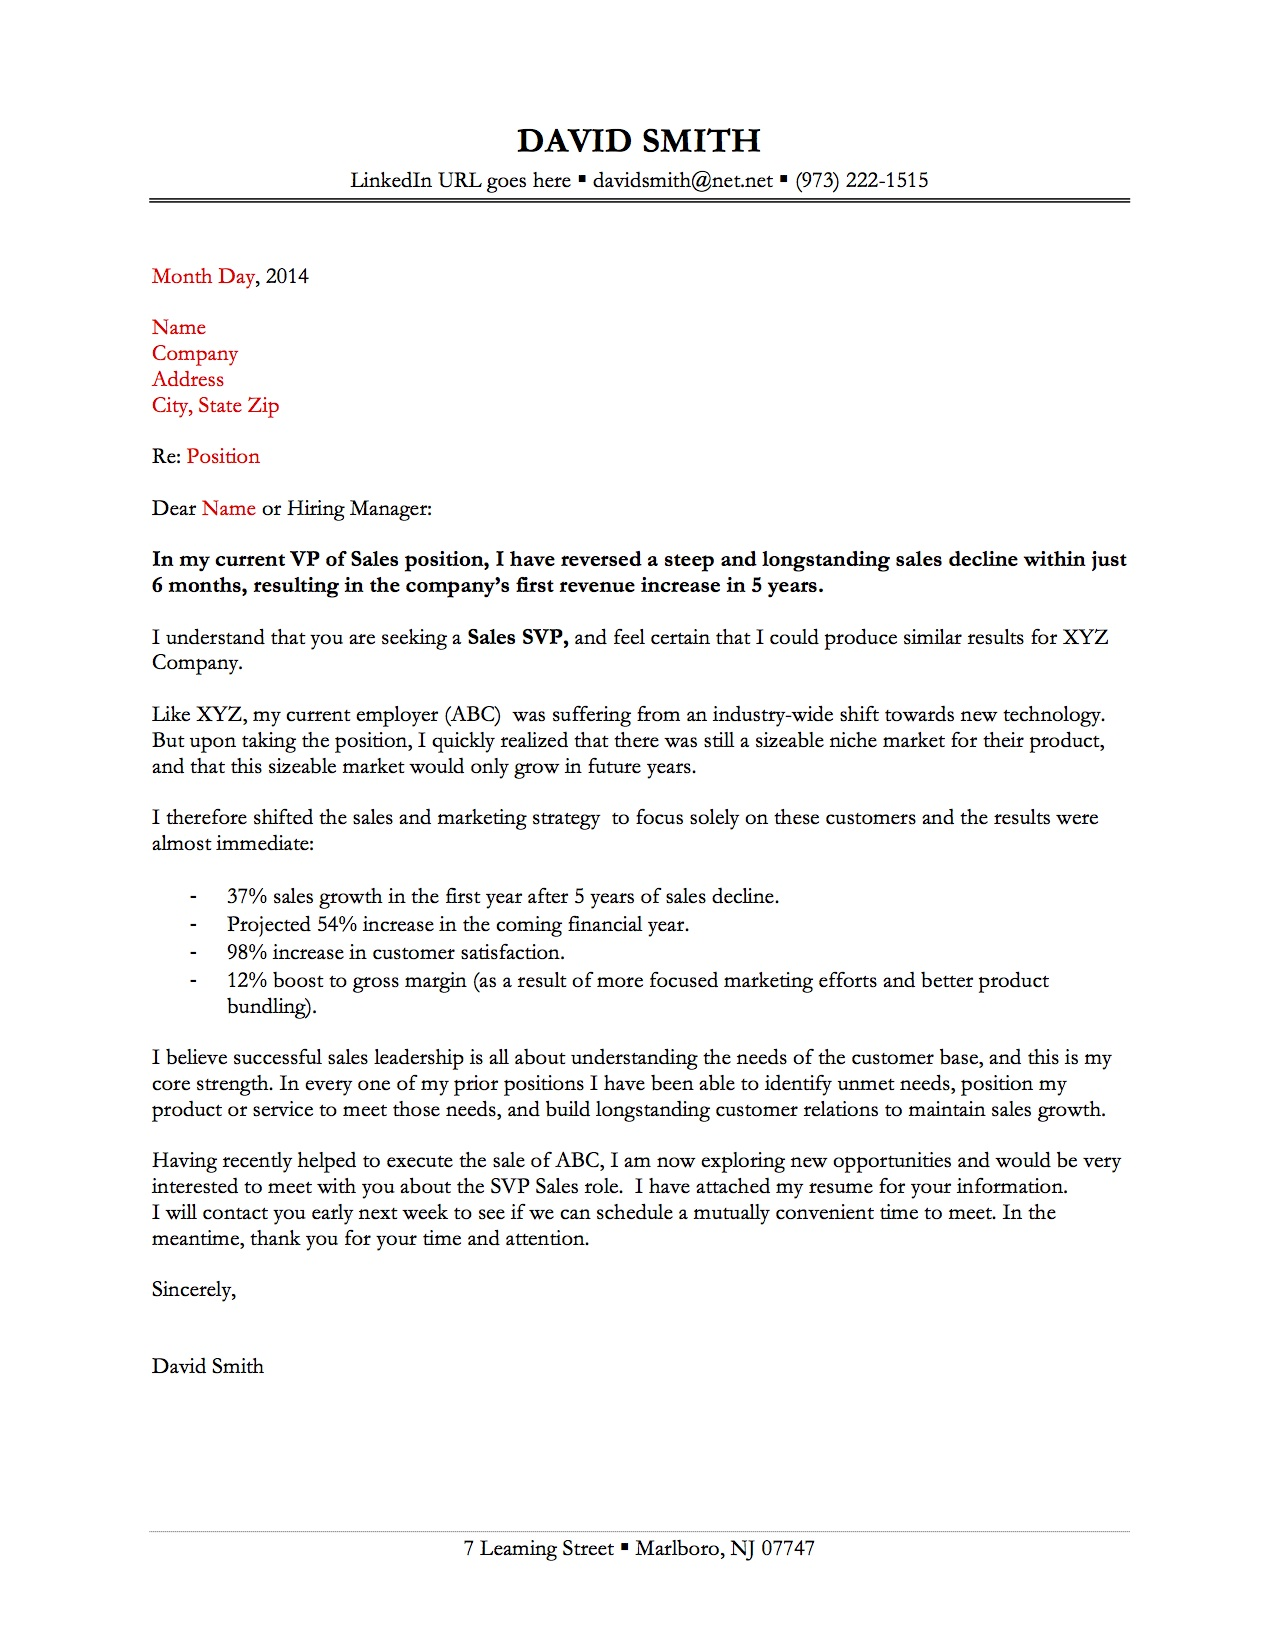 sample cover letter 2 - Cover Note Examples